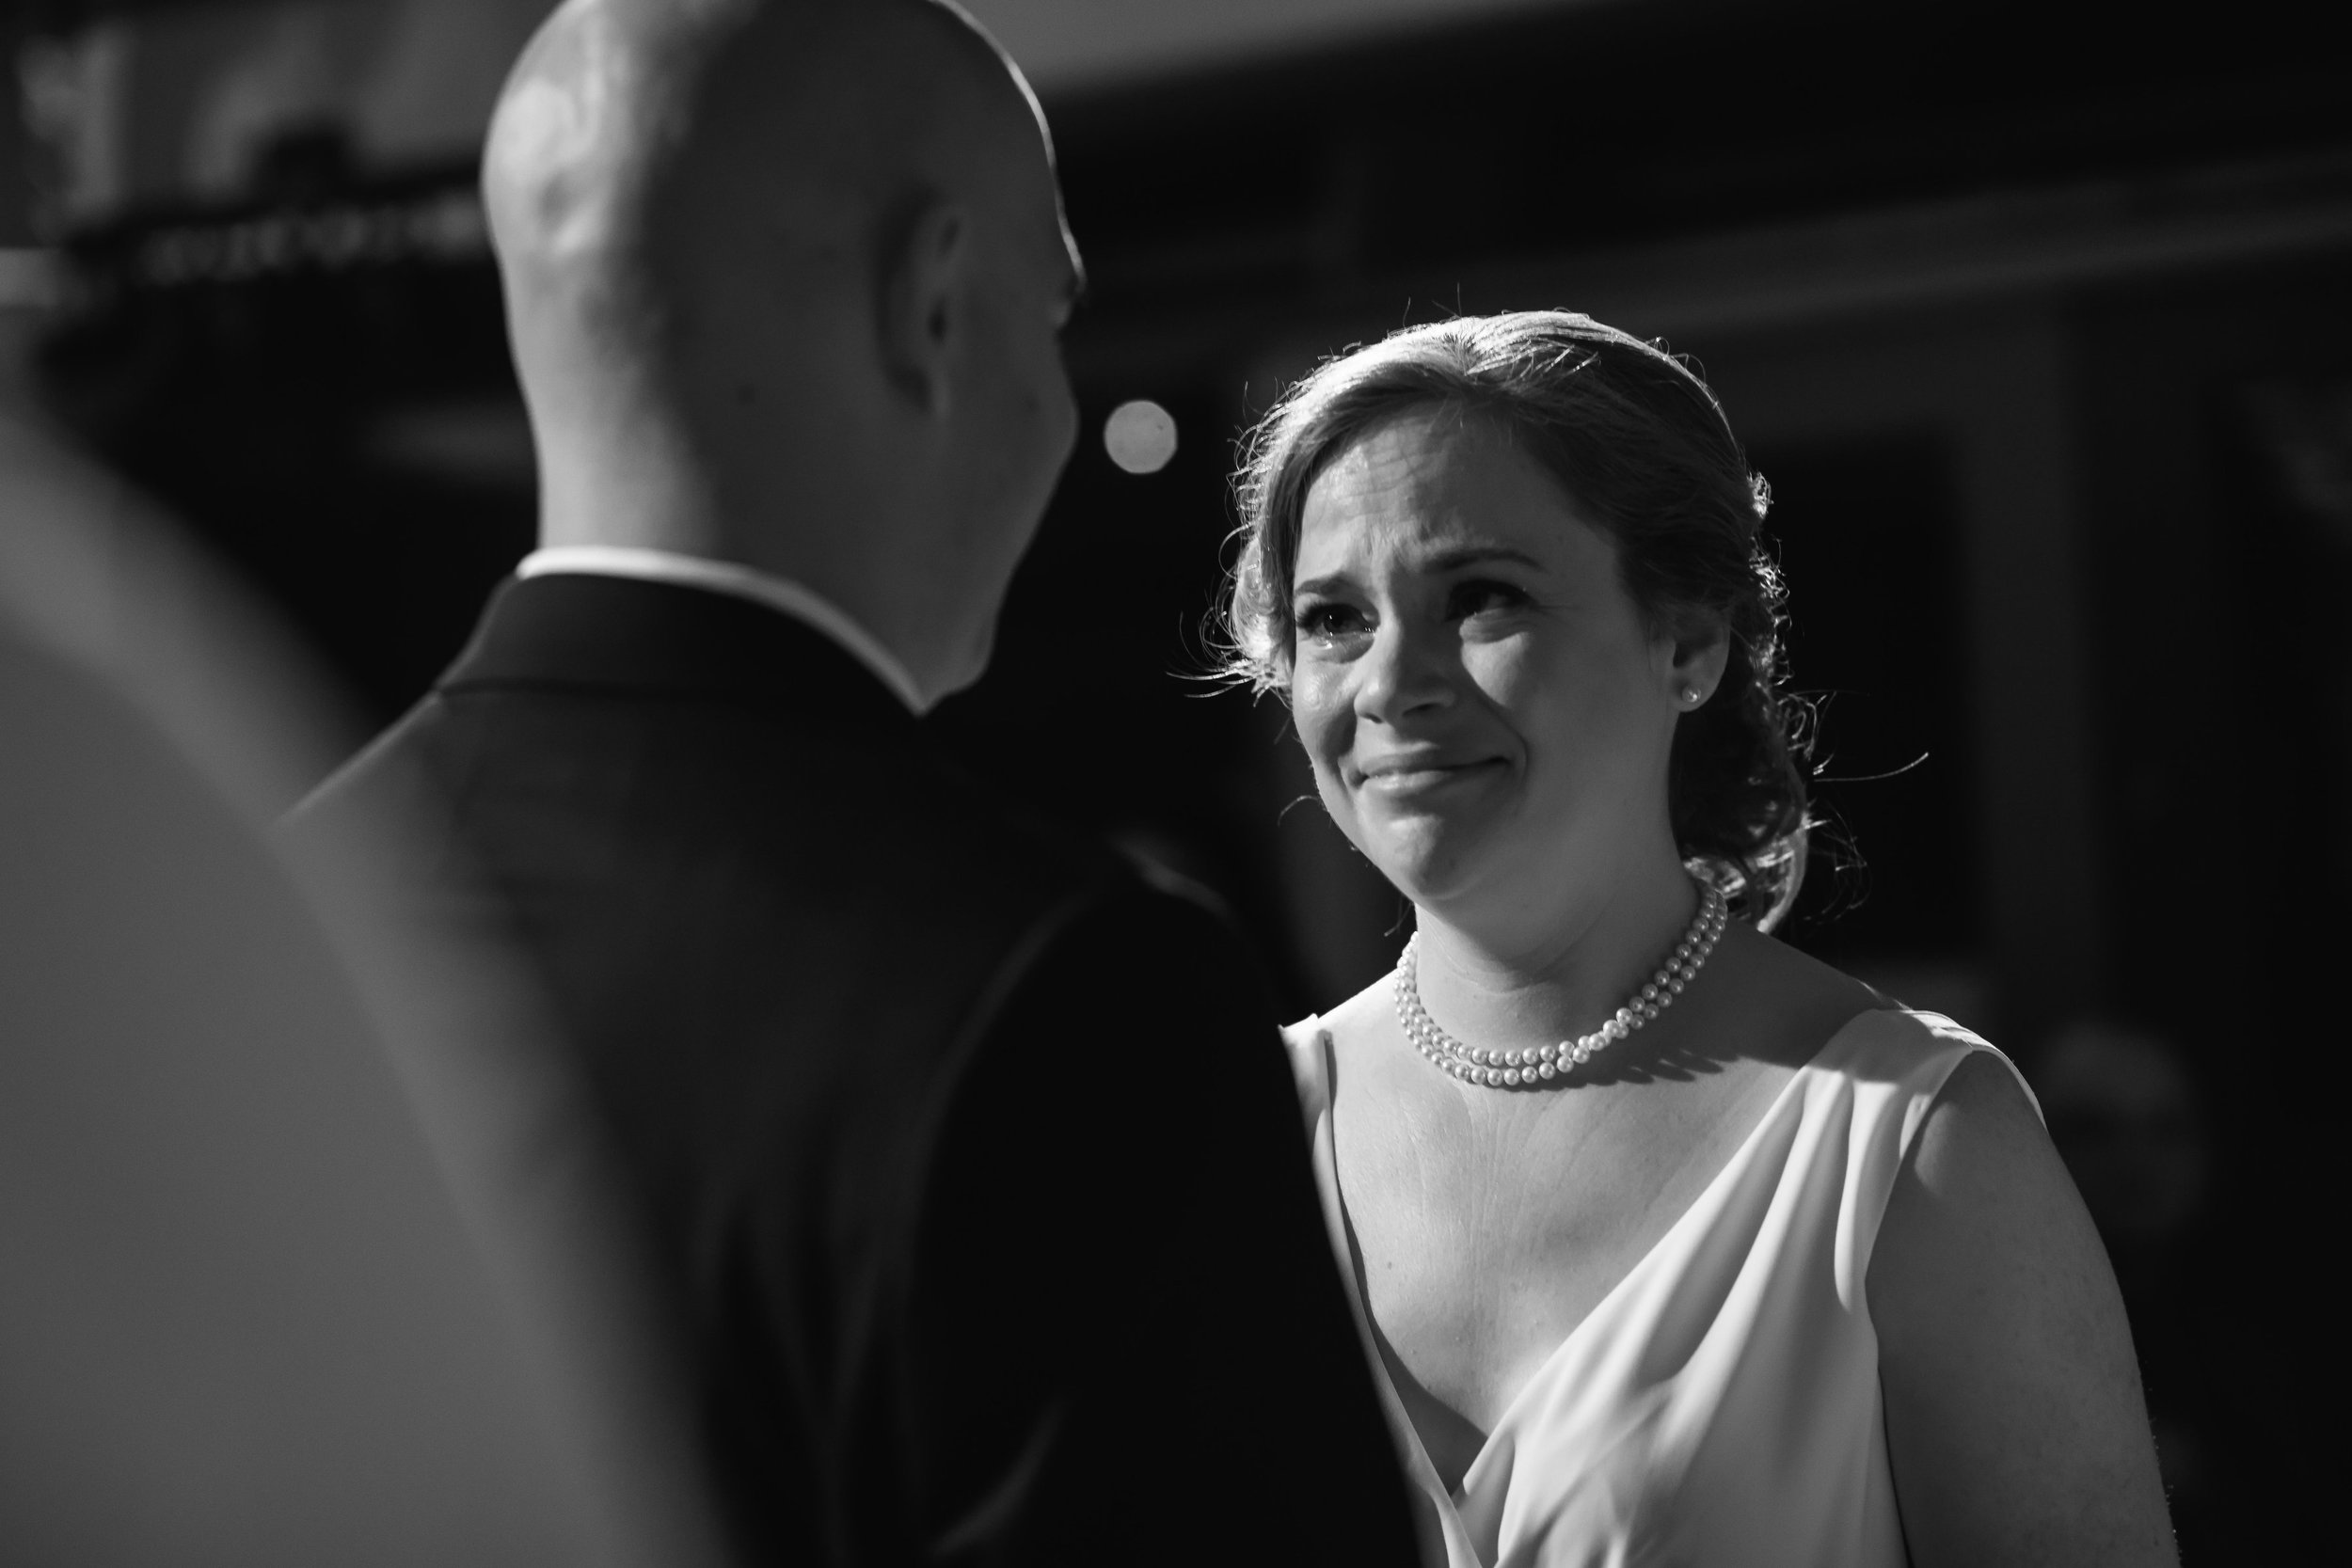 brielle-davis-events-photography-by-brea-torpedo-factory-wedding-ceremony-bride-crying.jpg